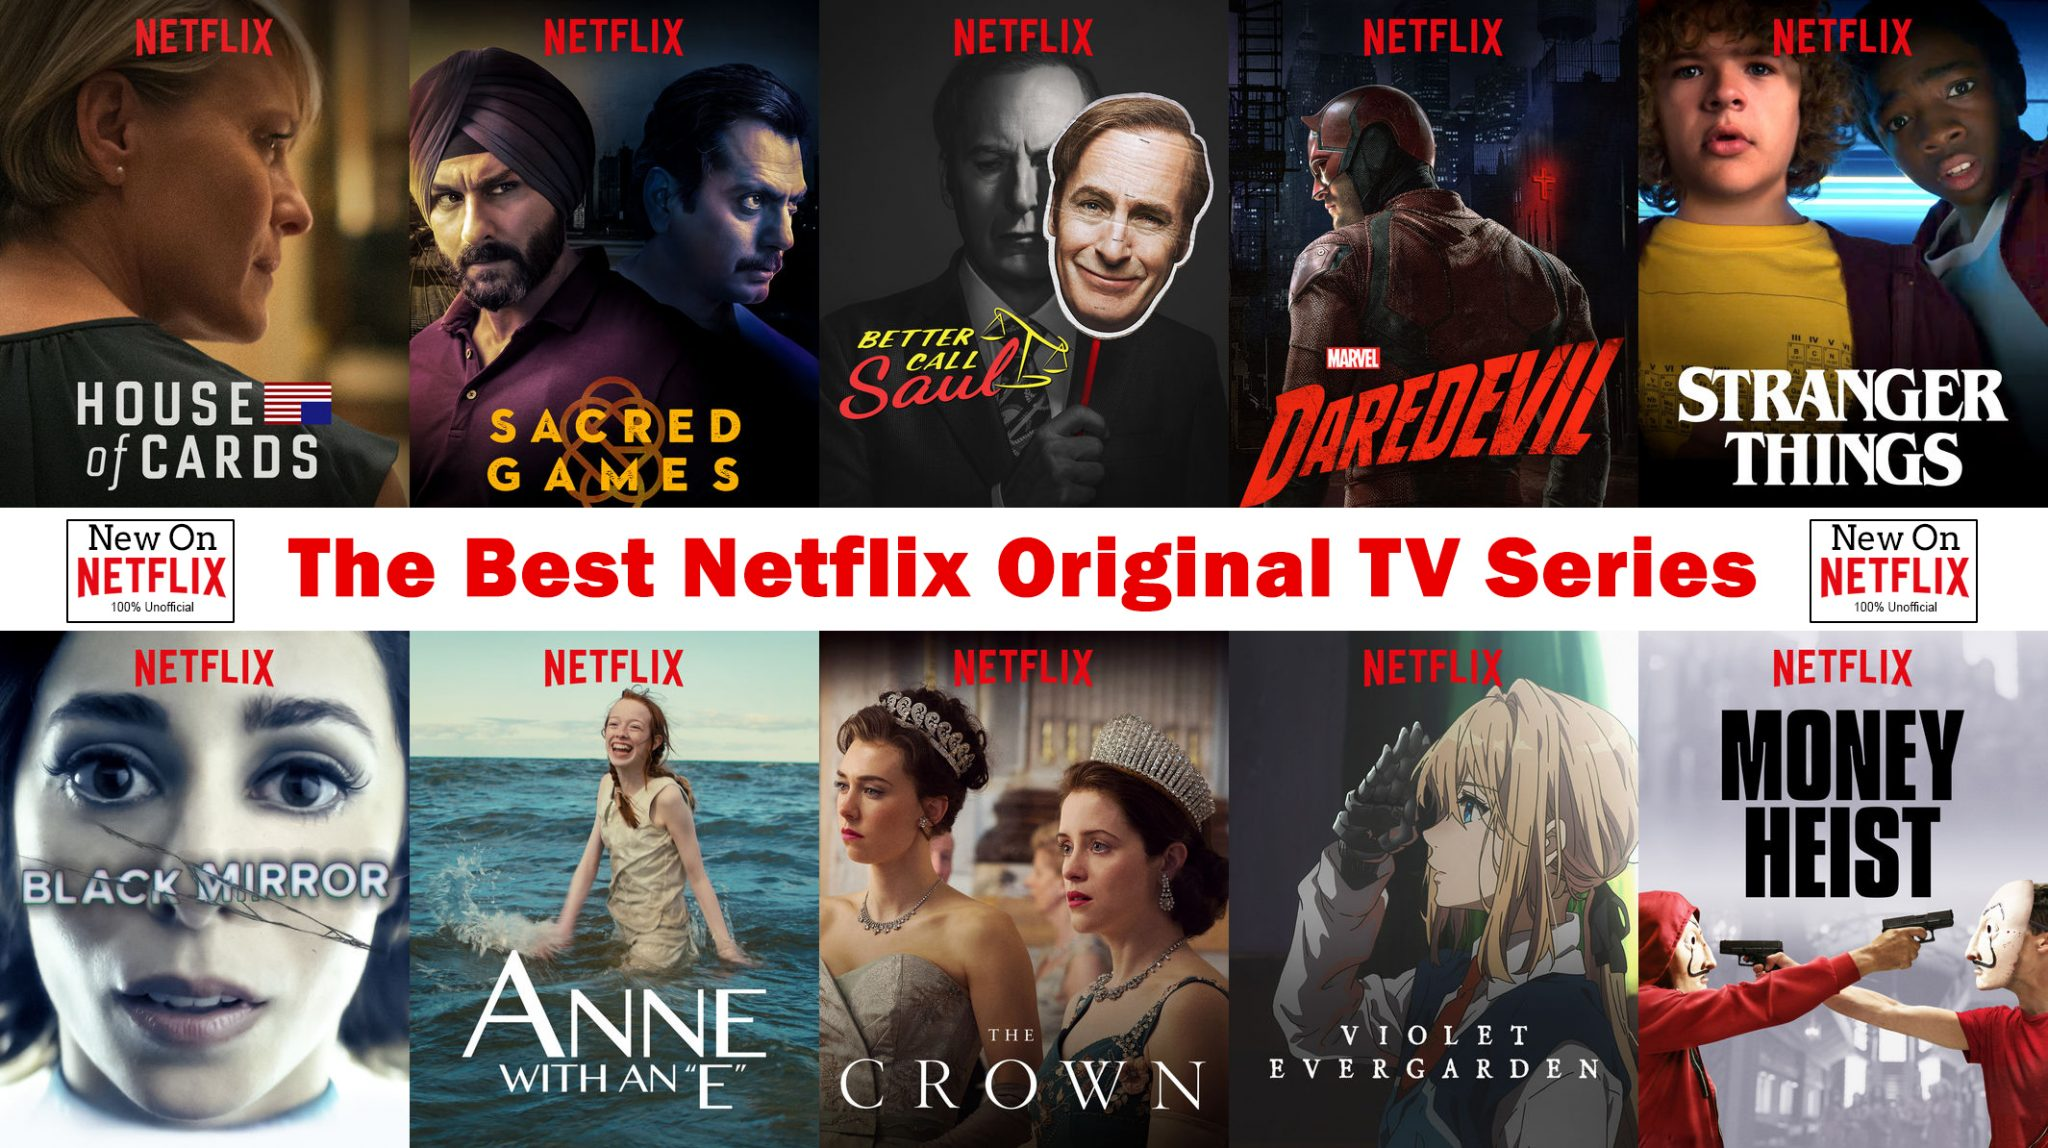 Here Are The Top Best Movies & TV Shows On Netflix This Month 2019